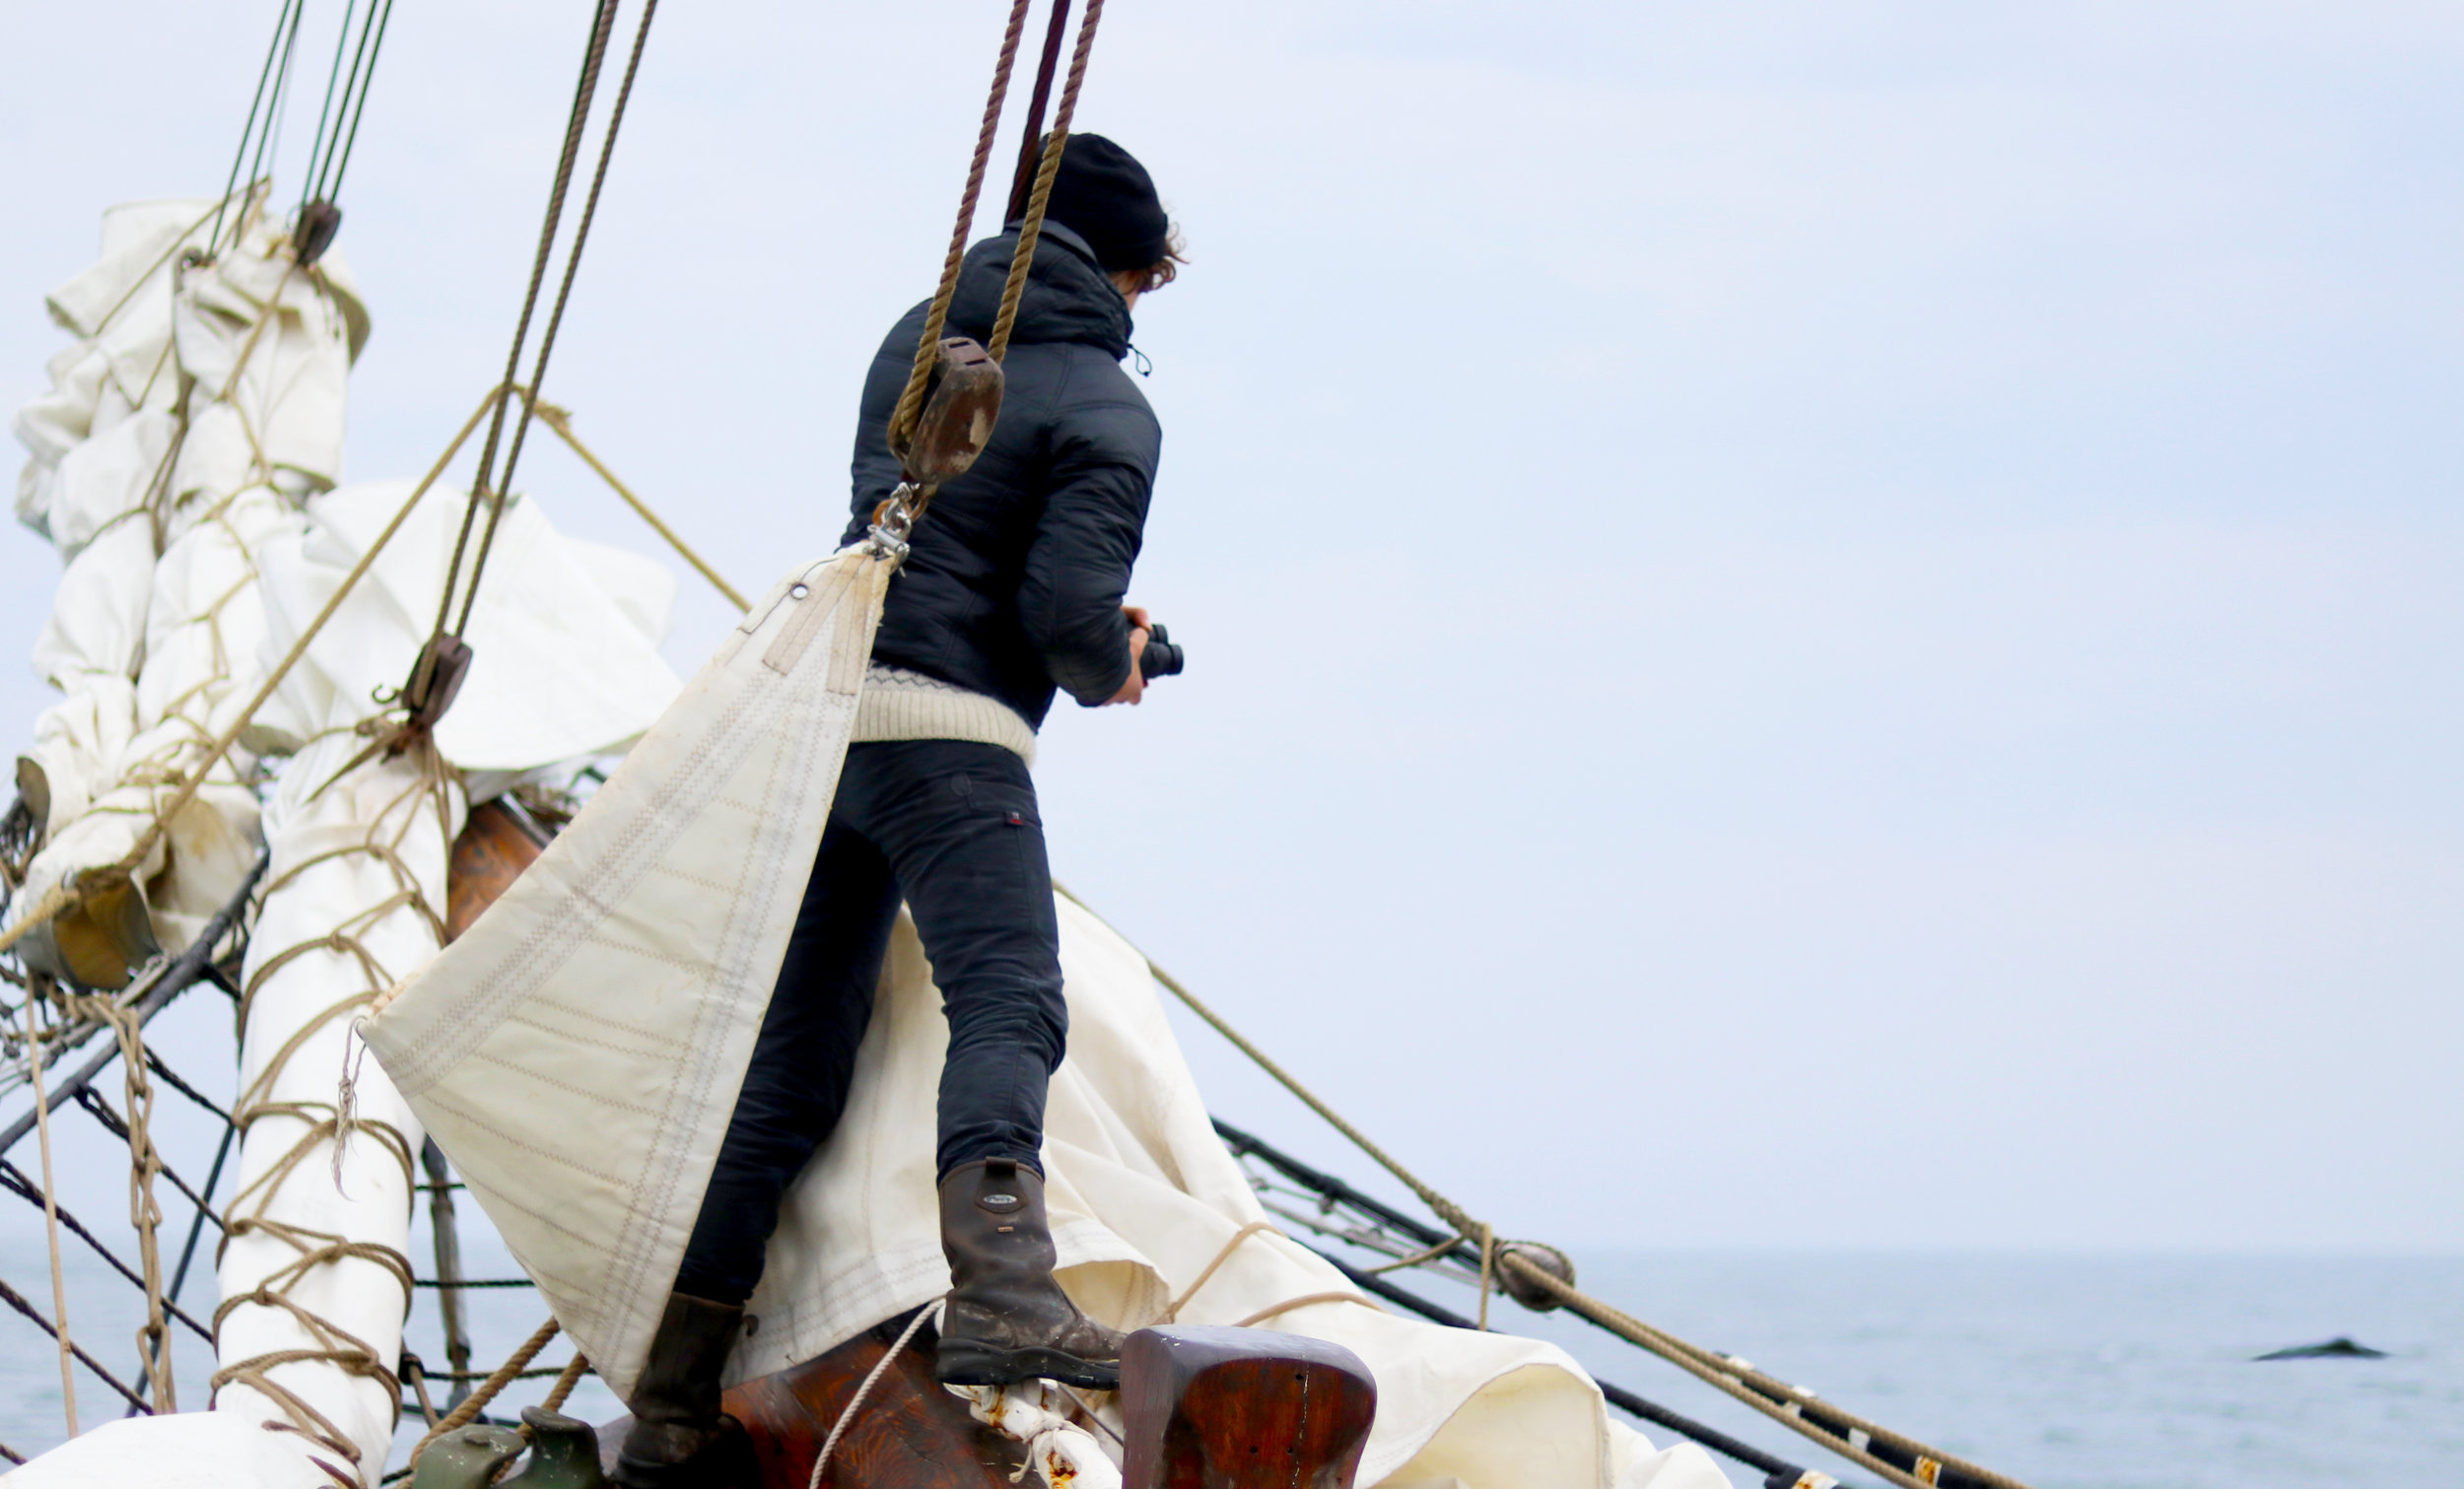 Photo: Searching for whales. ©Erica Cirino